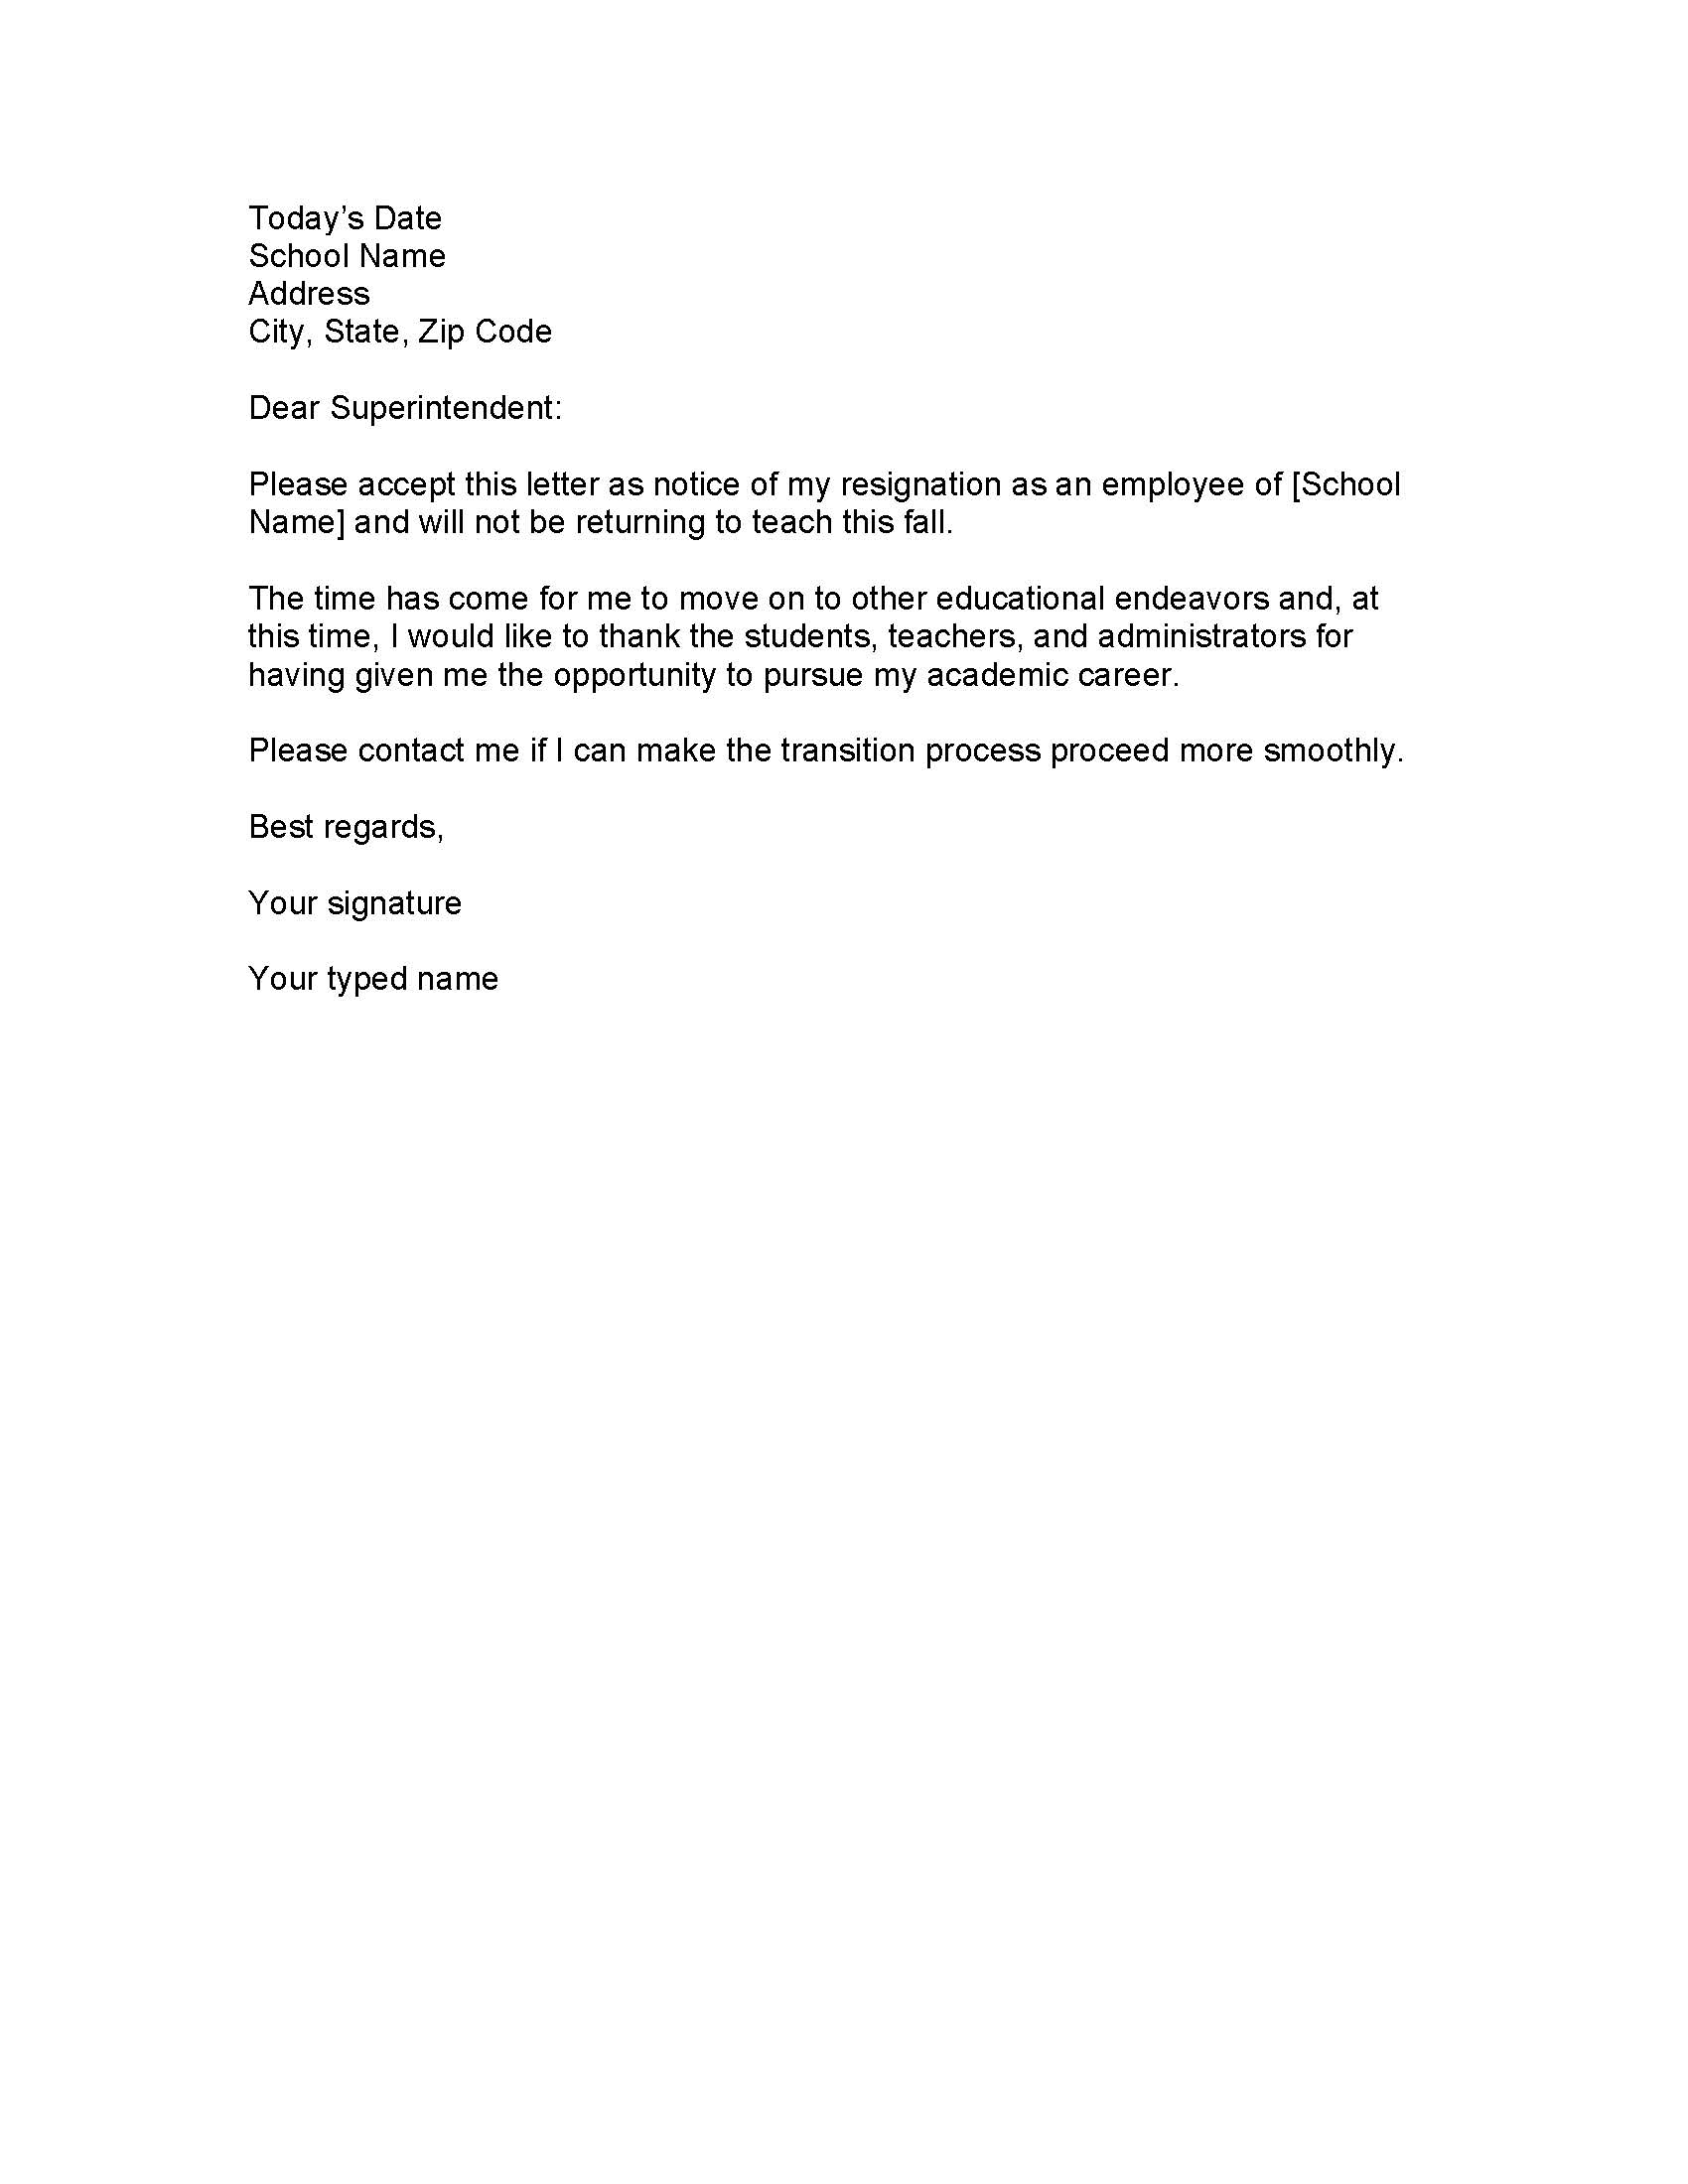 resignation letter employer 25 best ideas about resignation letter on pinterest job resignation letter letter sample